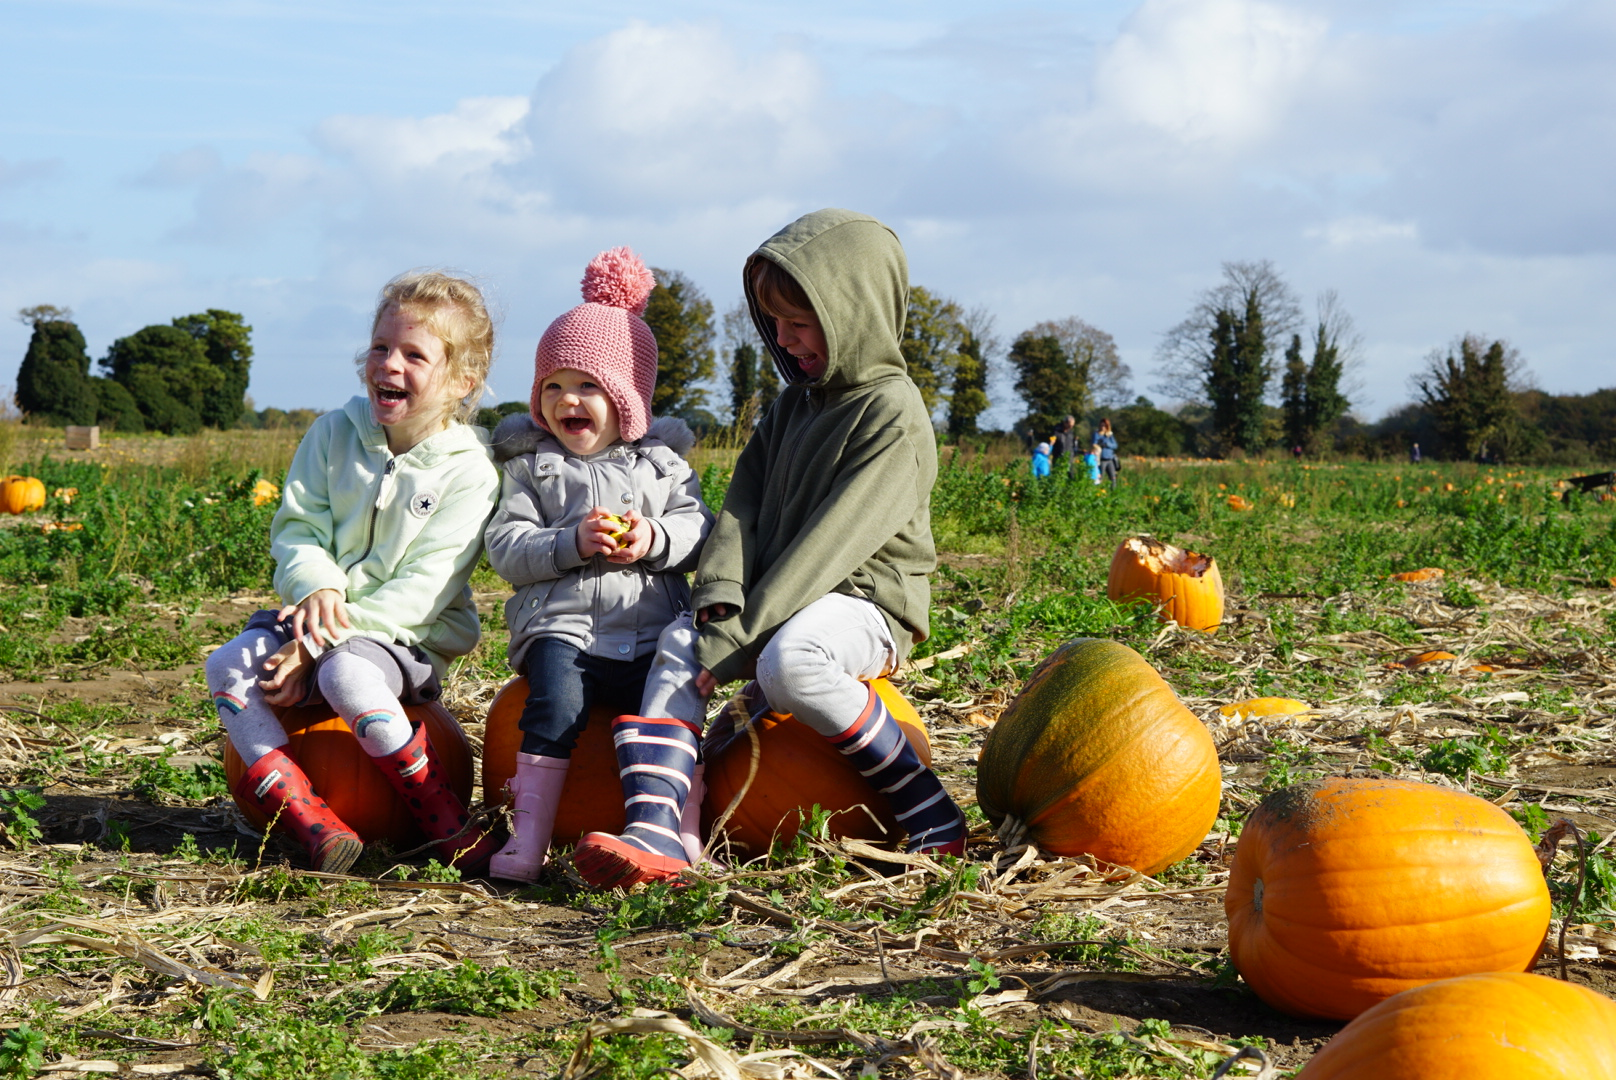 Pick your own pumpkins and a maize maze #Outdoorfun